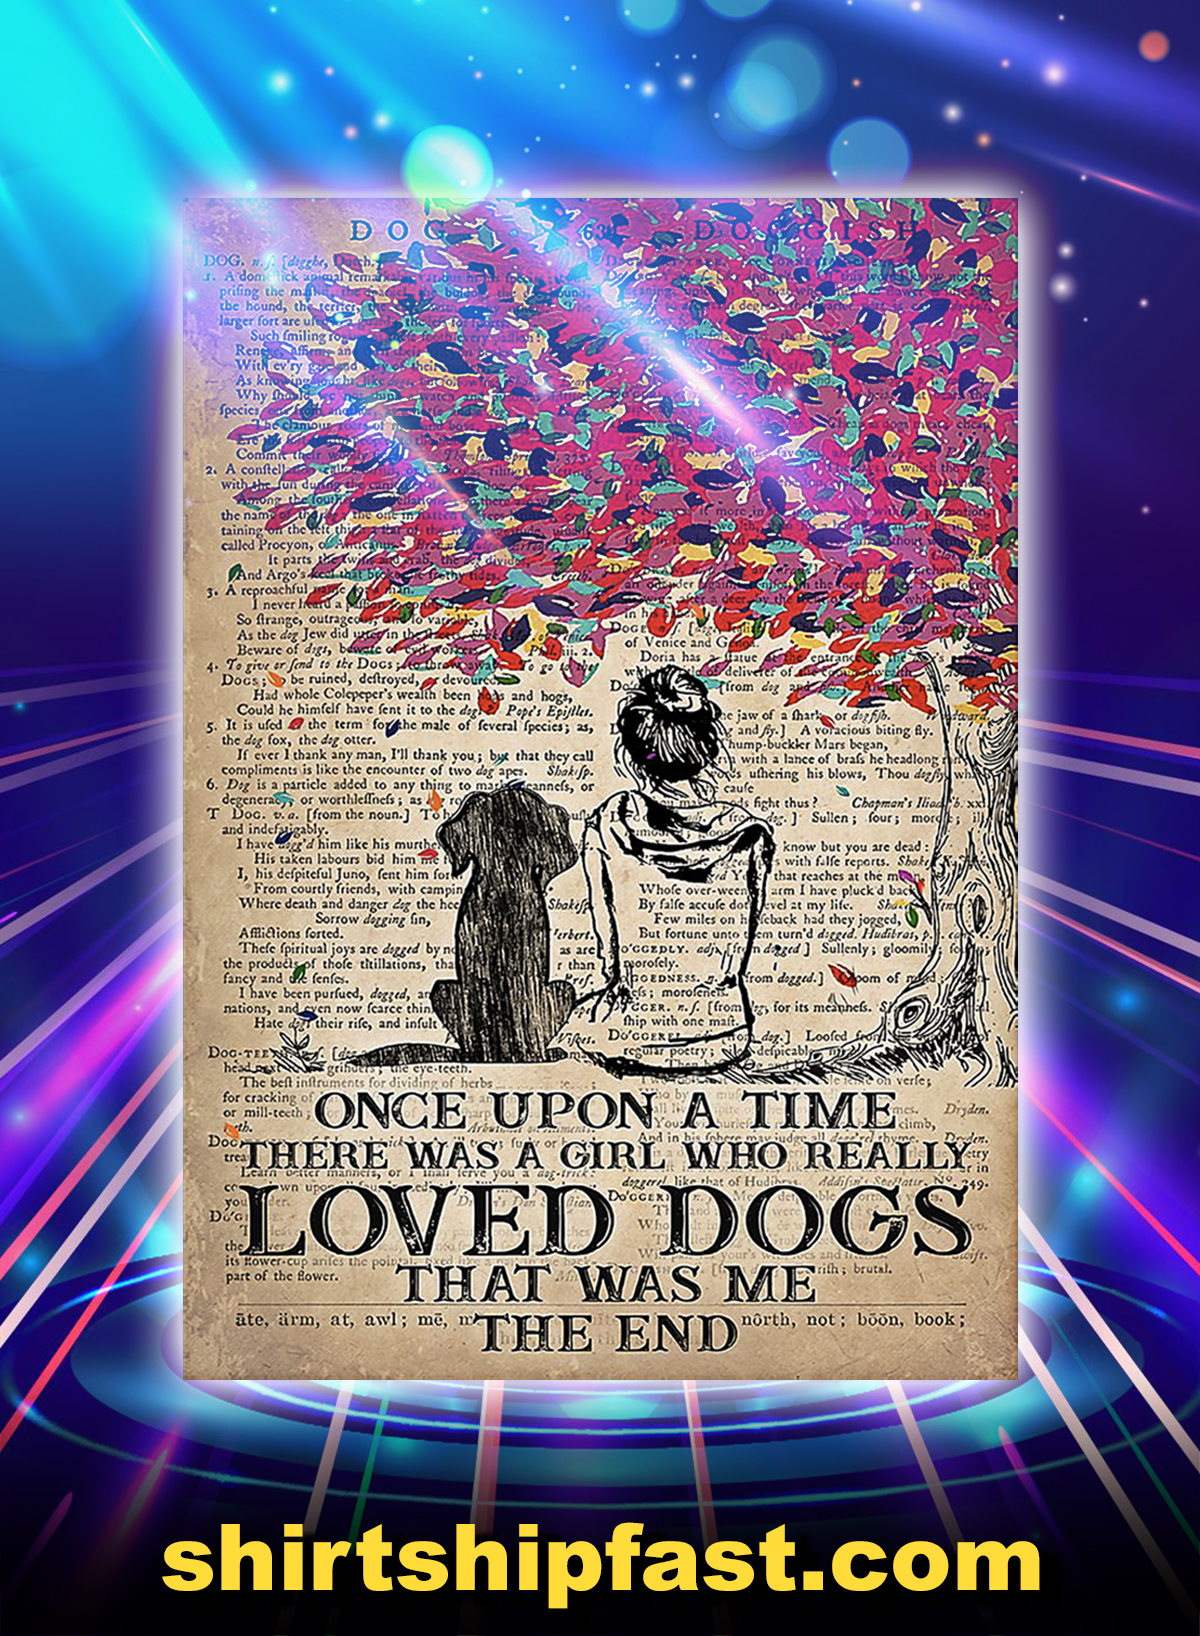 Once upon a time there was a girl loved dogs poster - A1